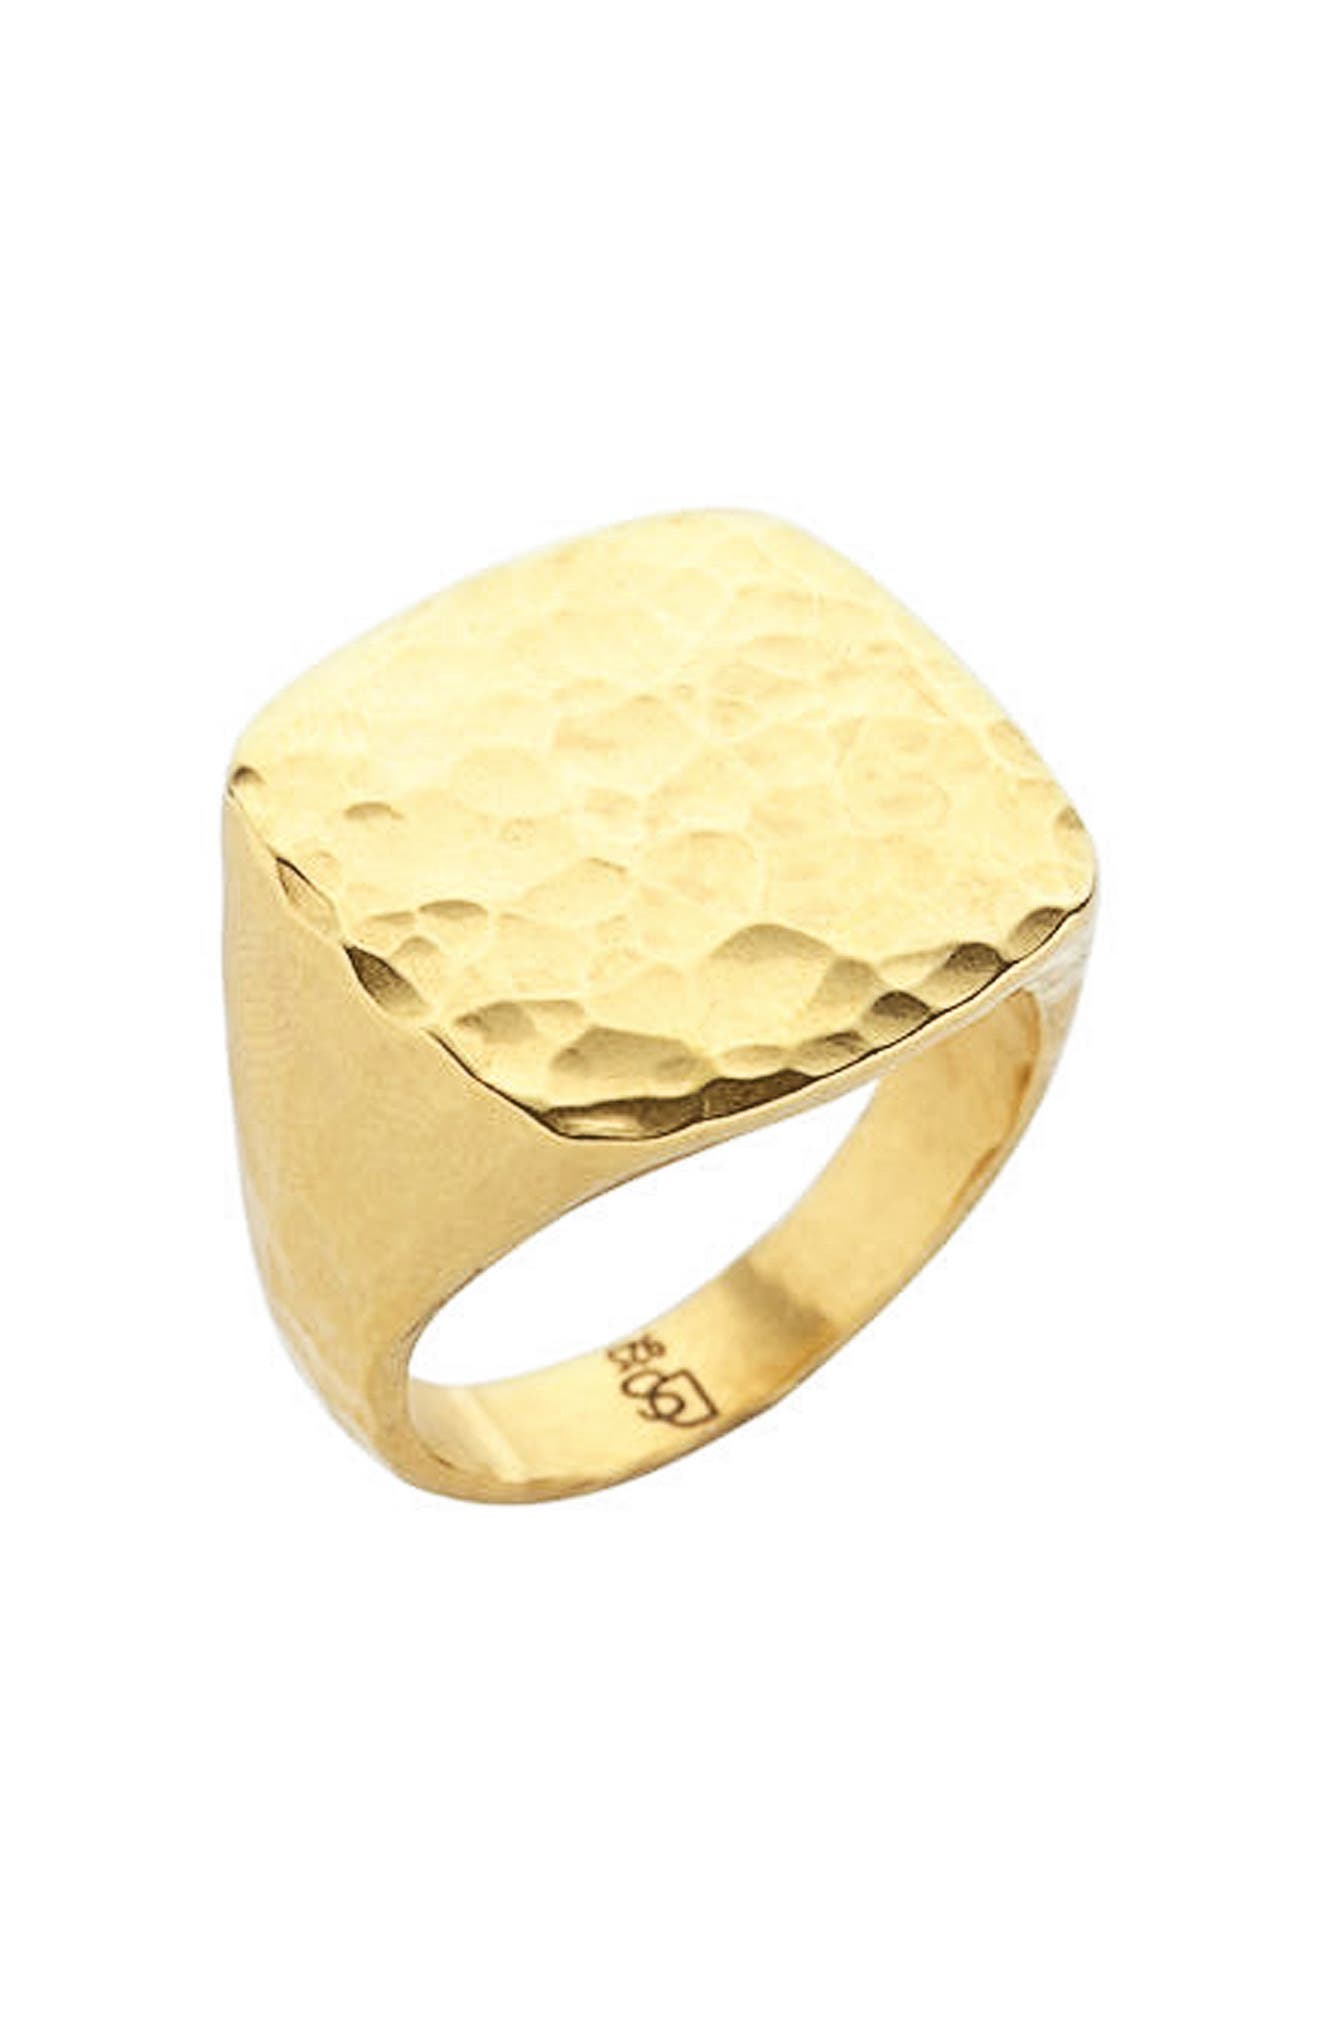 Degs & Sal Square Hammered Ring